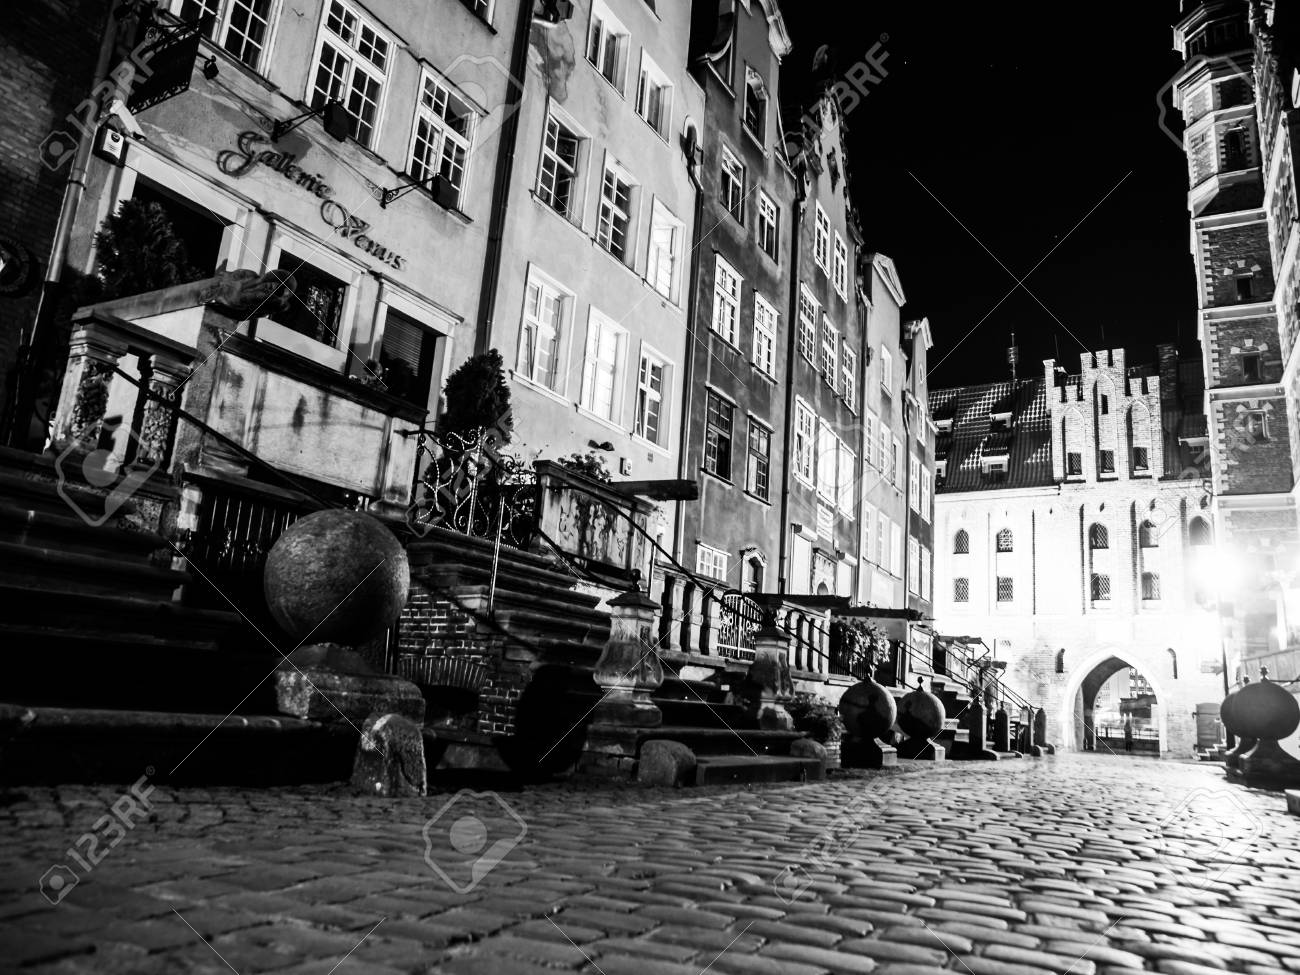 Mariacka street by night in old town of gdansk poland black and white image